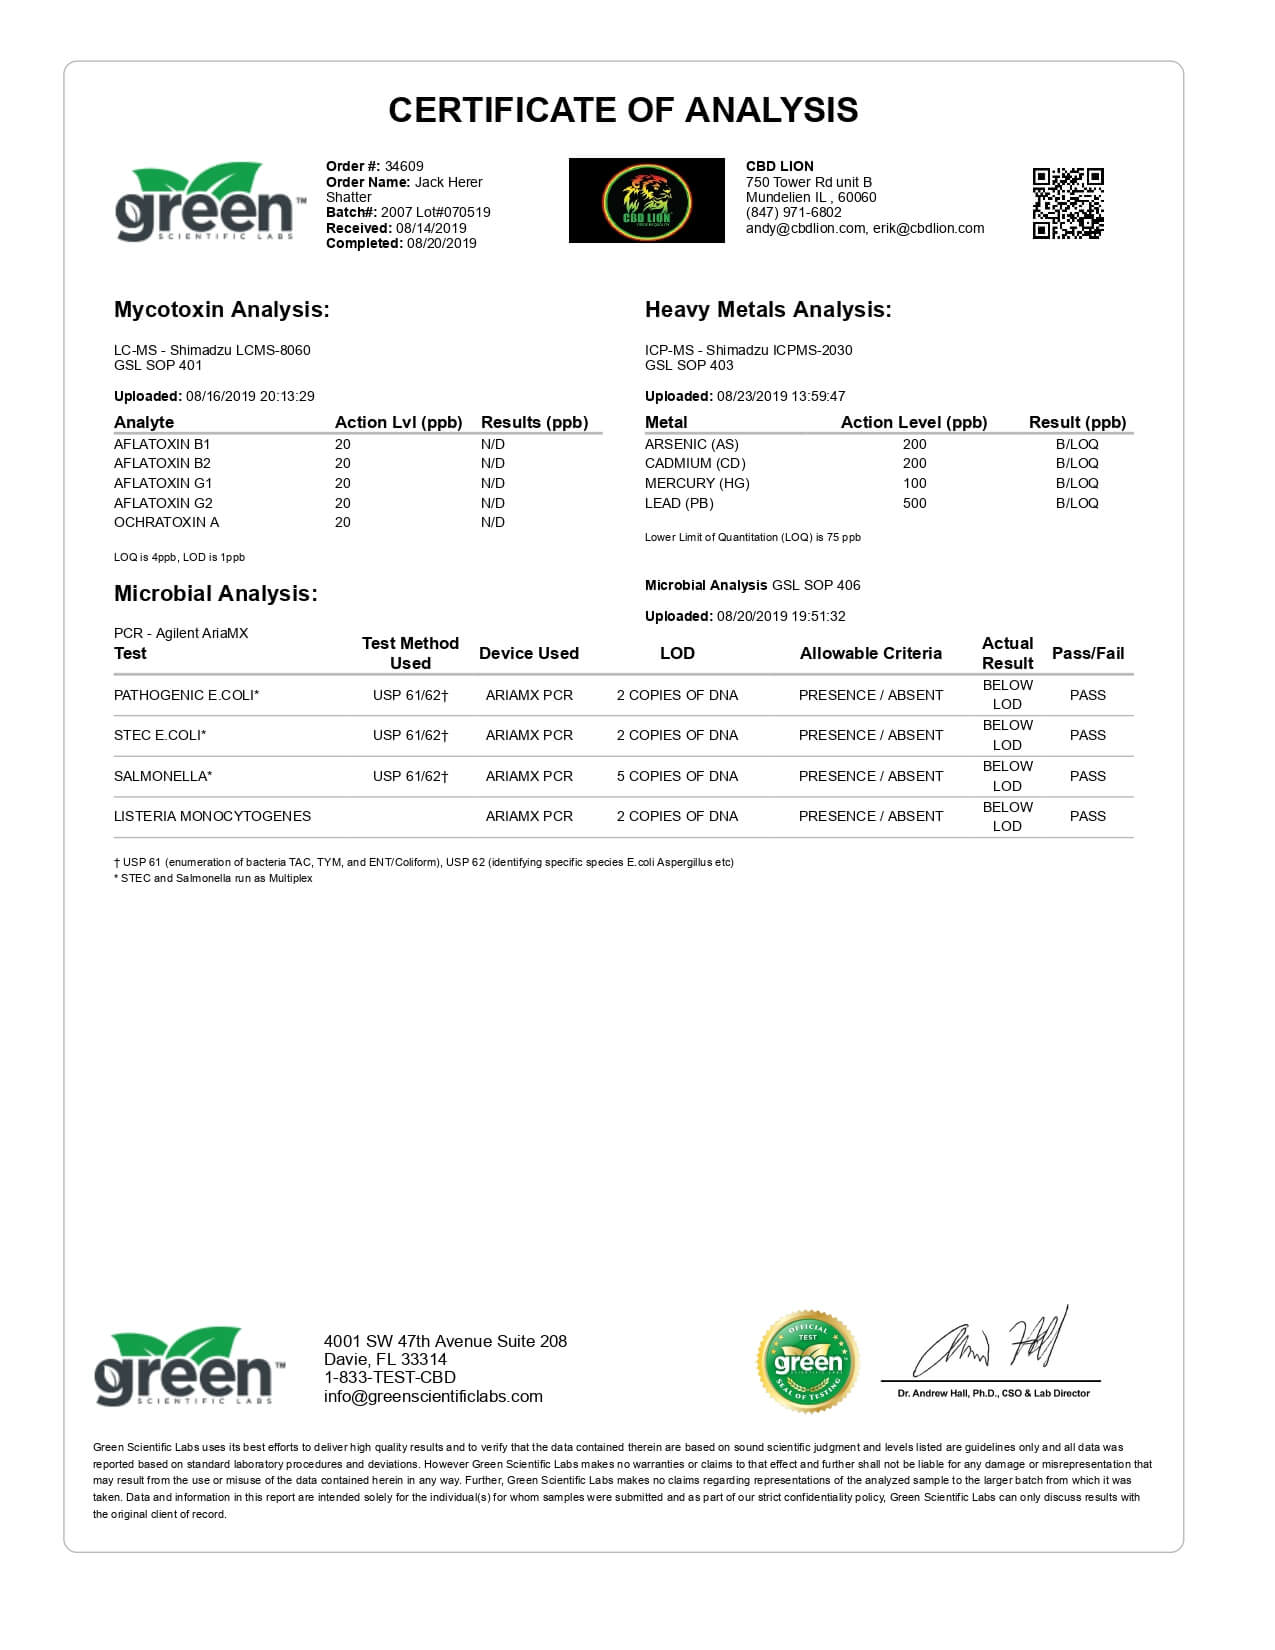 CBD Lion CBD Concentrate Jack Herer Shatter 0.5g Lab Report